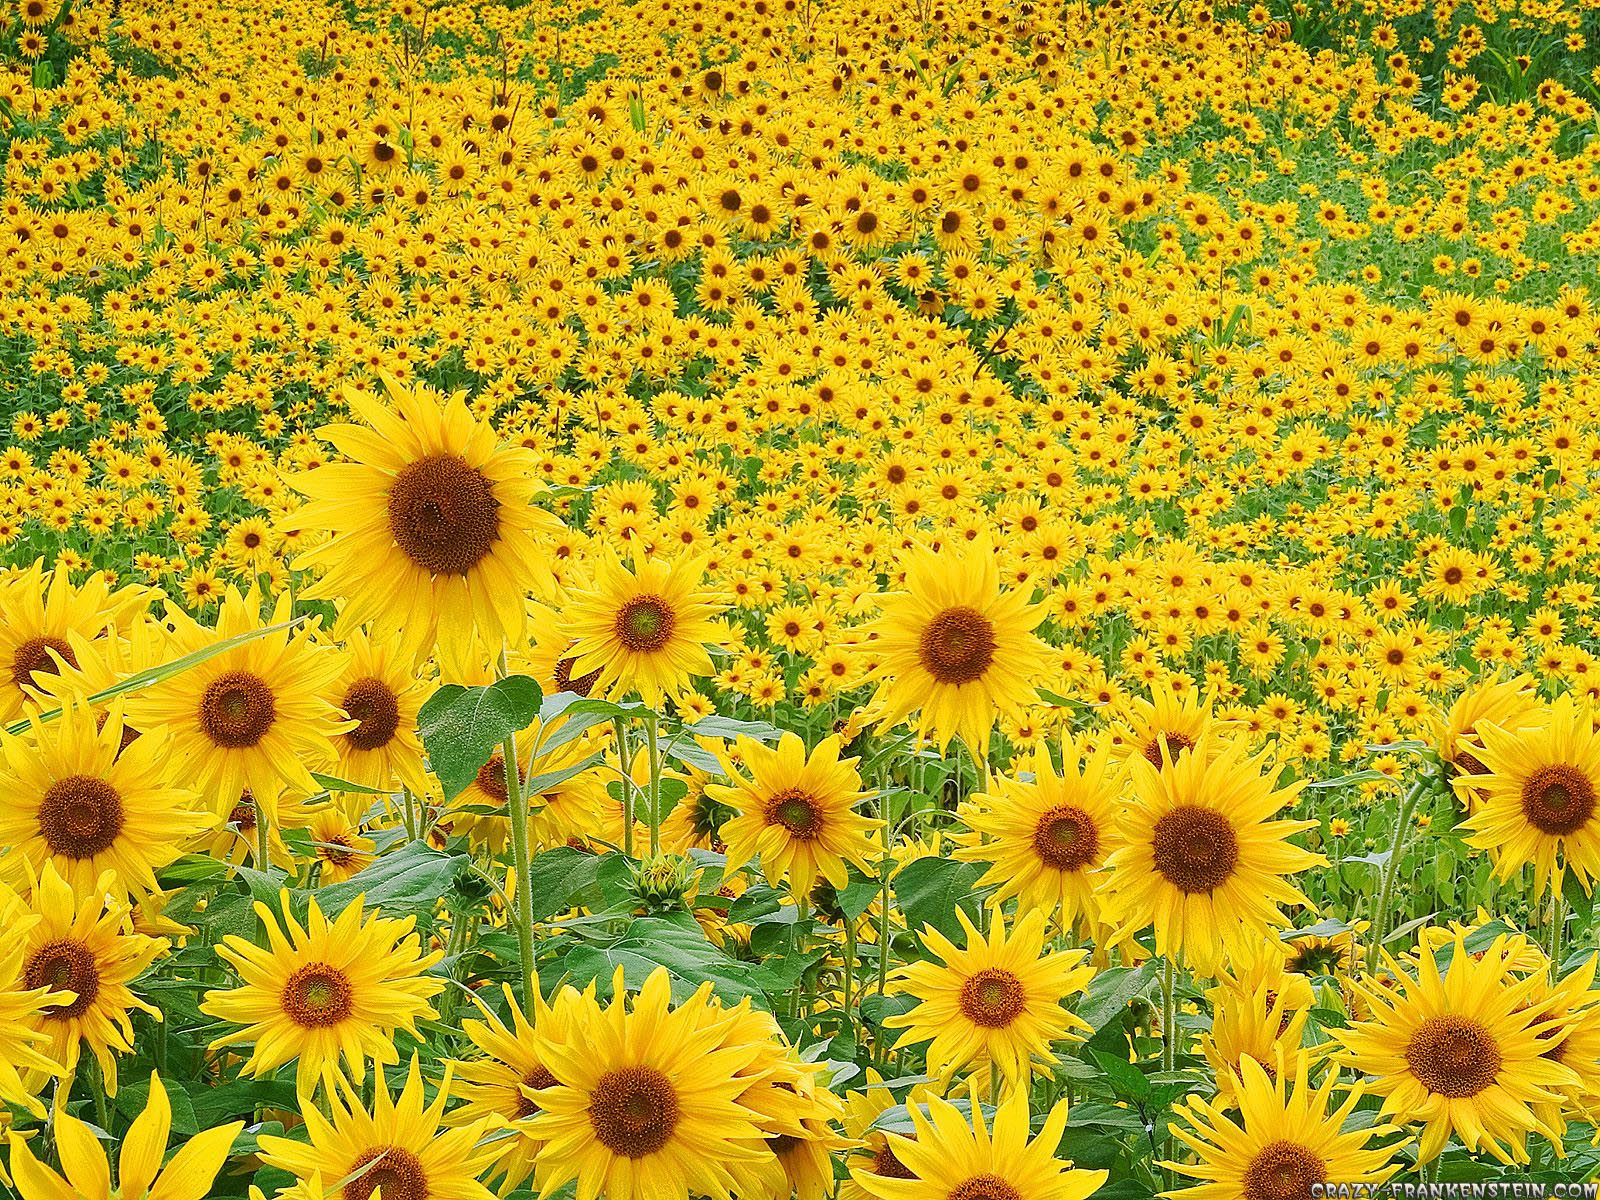 sunflowers   sunflower seeds Wallpaper 24670612 1600x1200